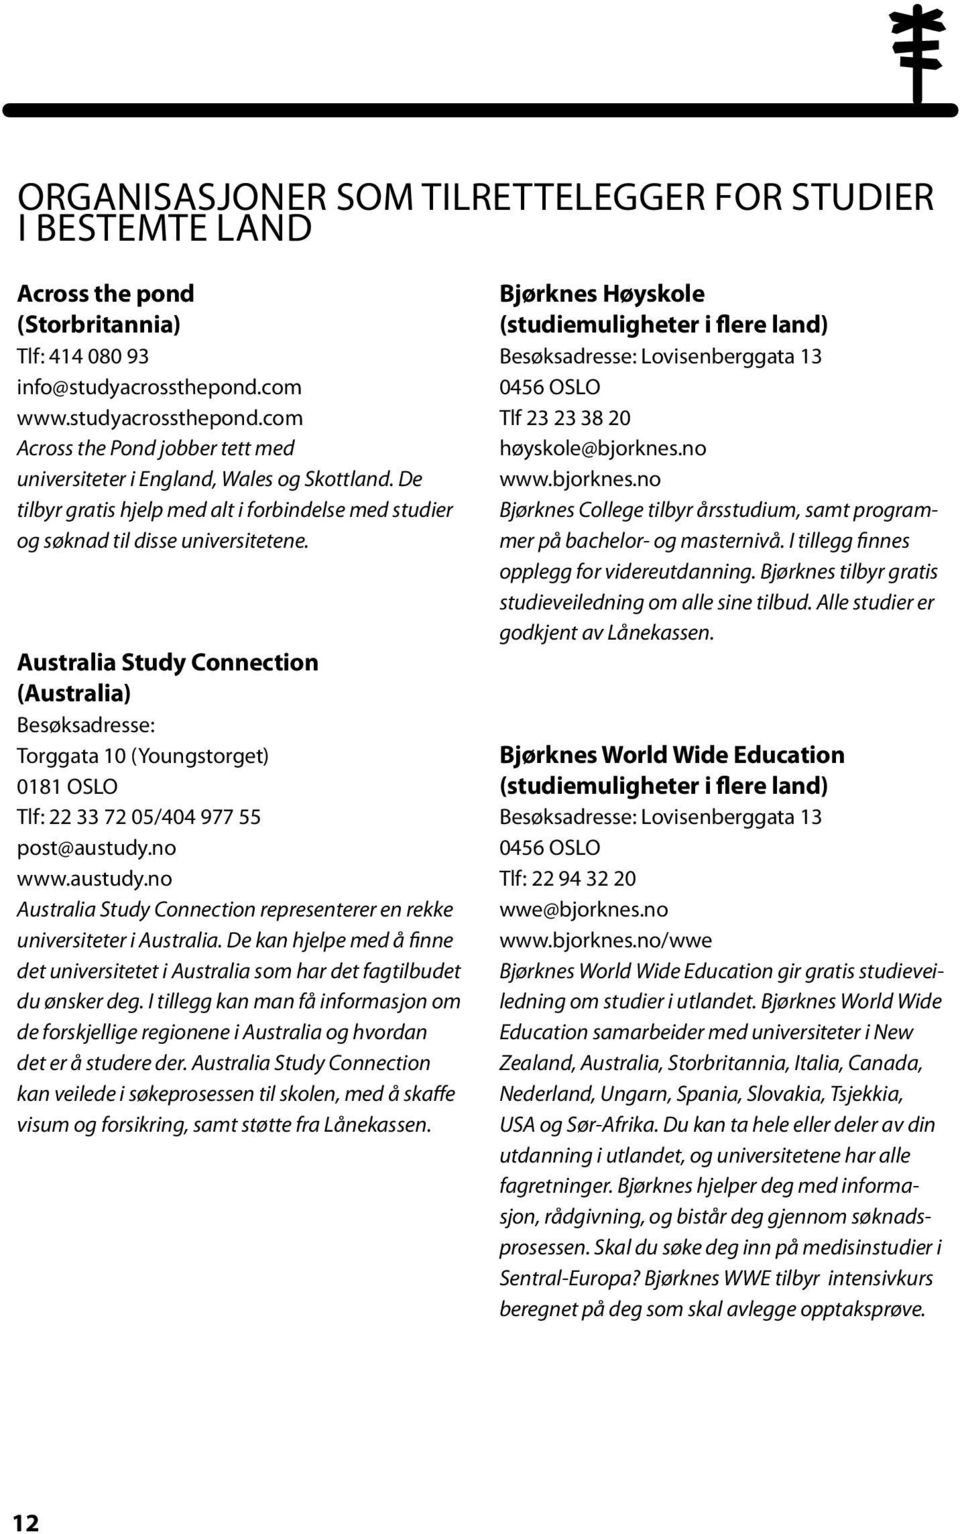 Australia Study Connection (Australia) Besøksadresse: Torggata 10 (Youngstorget) 0181 OSLO Tlf: 22 33 72 05/404 977 55 post@austudy.